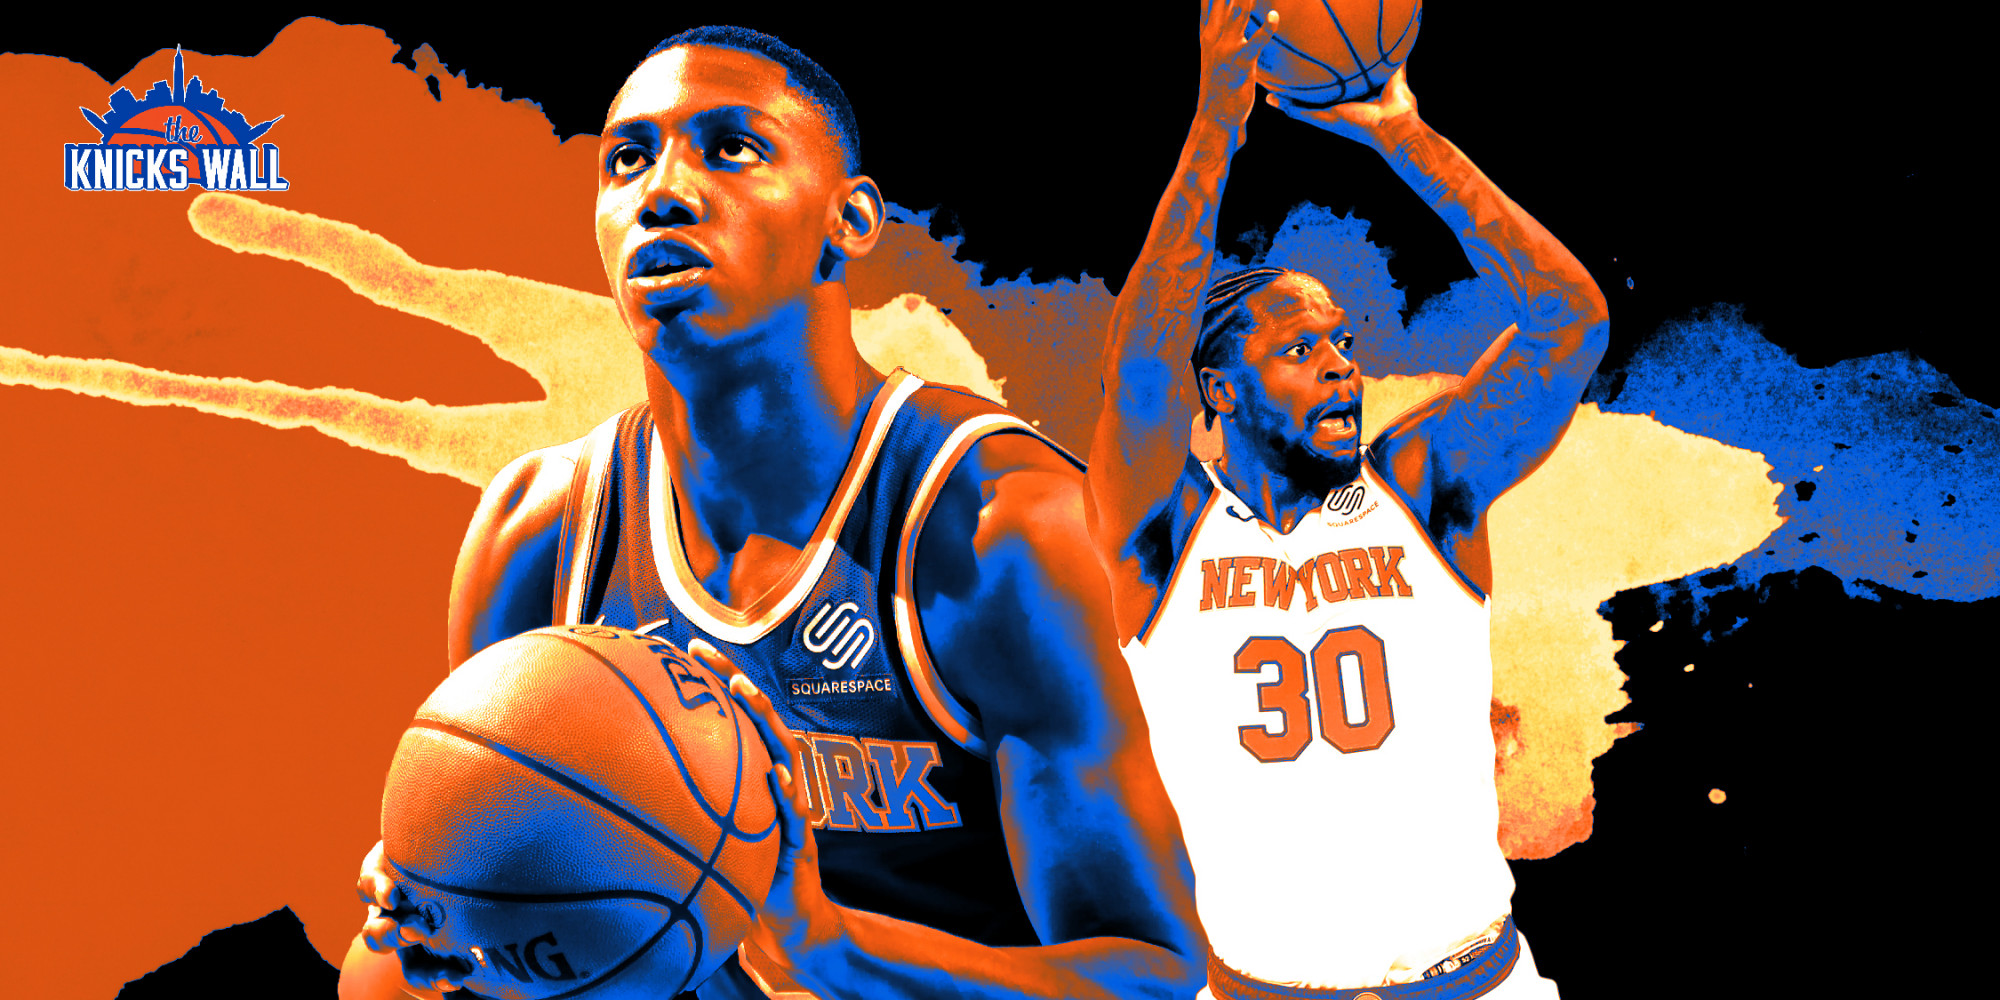 Knicks' Three-Point Shooting a Strength That Can Keep Growing | The Knicks Wall